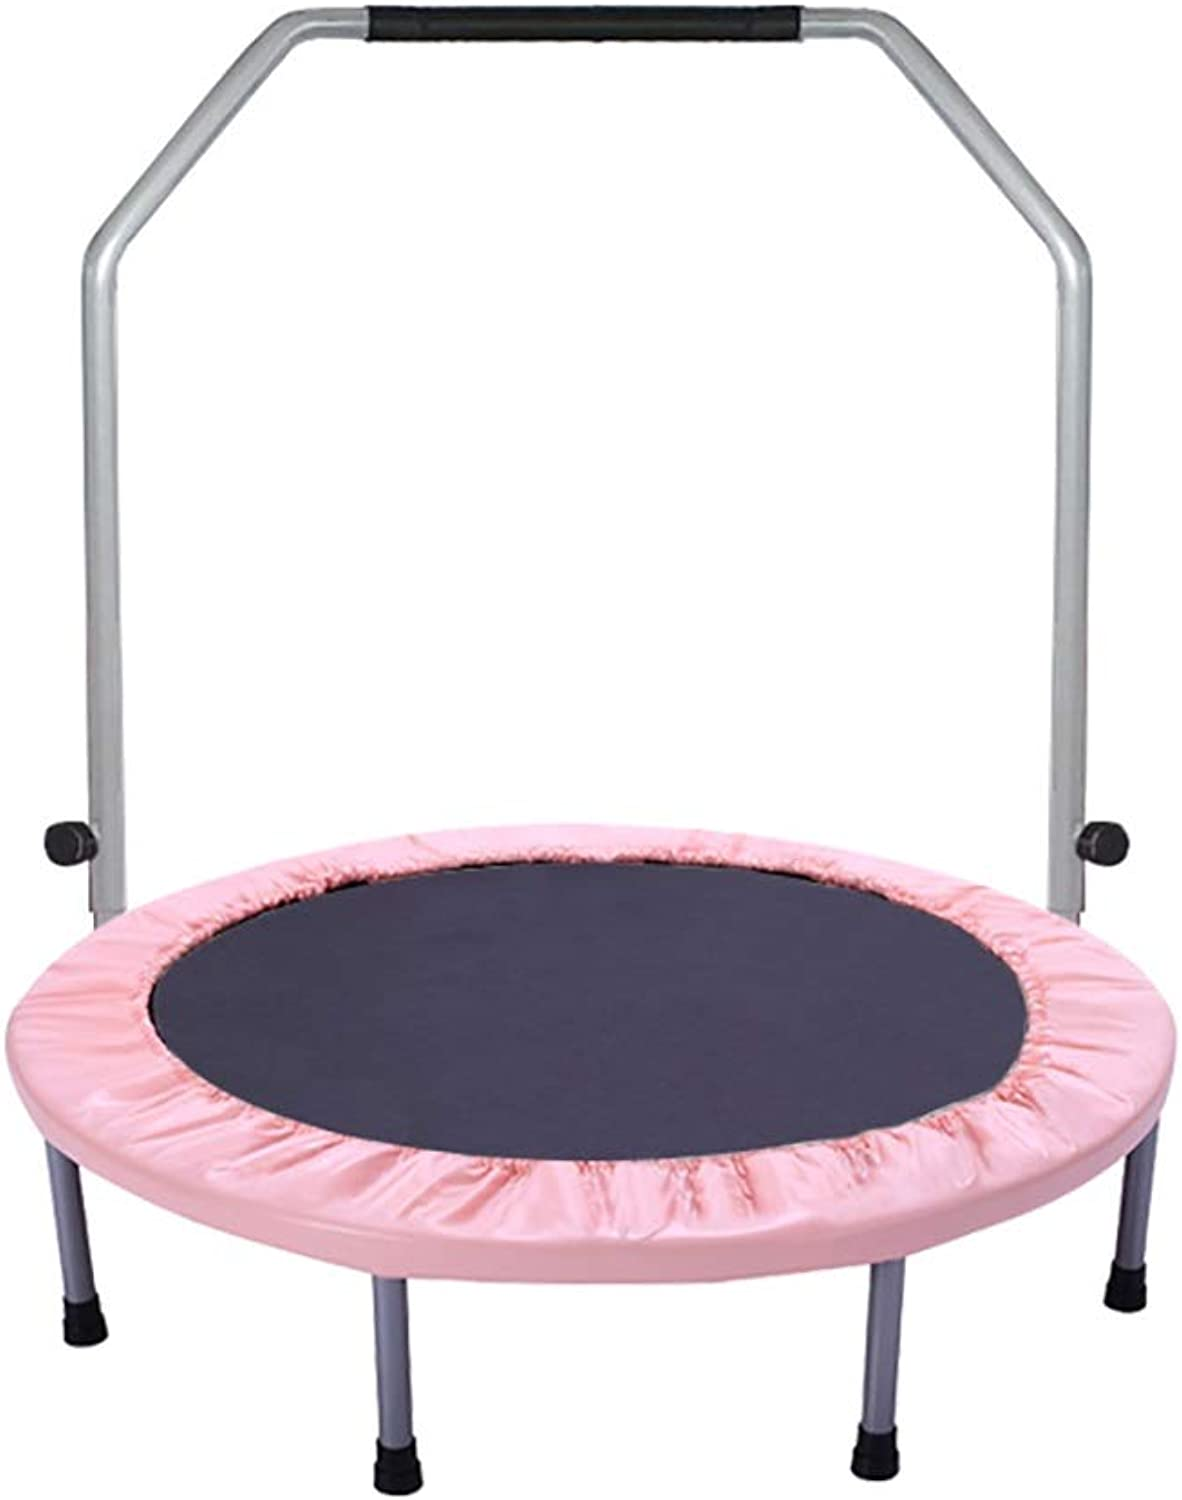 TRAMPOLINE ZCJB 38'' Mini Foldable Round with Safety Pad and Jumping Mat, 220 Pounds - Pink (Size   With armrests)